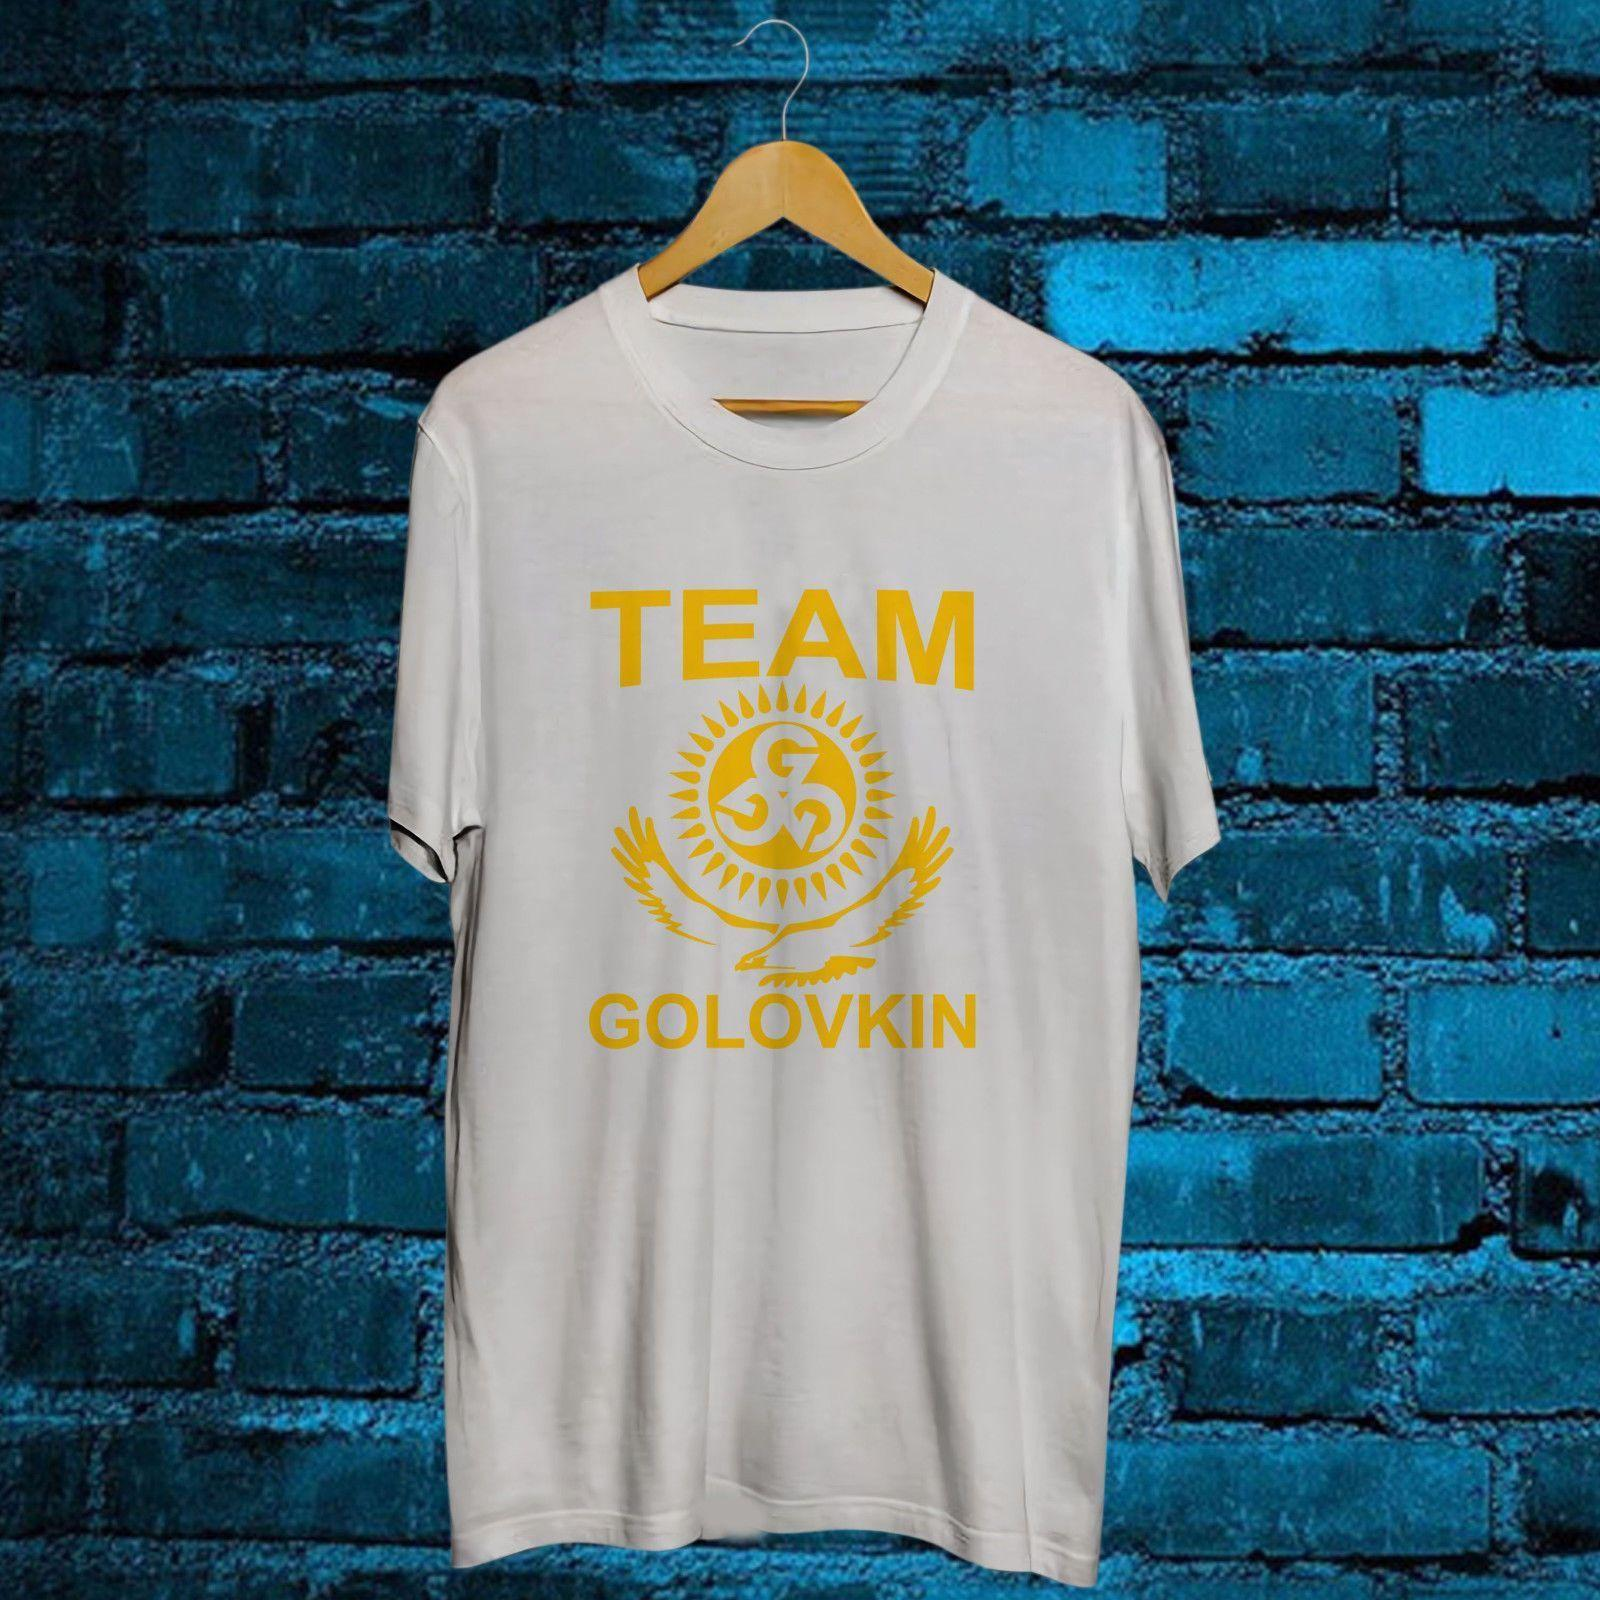 e4a29c34ff45a8 Team GGG Golovkin Boxing Gennady Golovkin T Shirt Mens 2018 Fashion Brand T  Shirt O Neck 100%cotton T Shirt Tops Tee Custom Environmental T Shirs T  Shirst ...